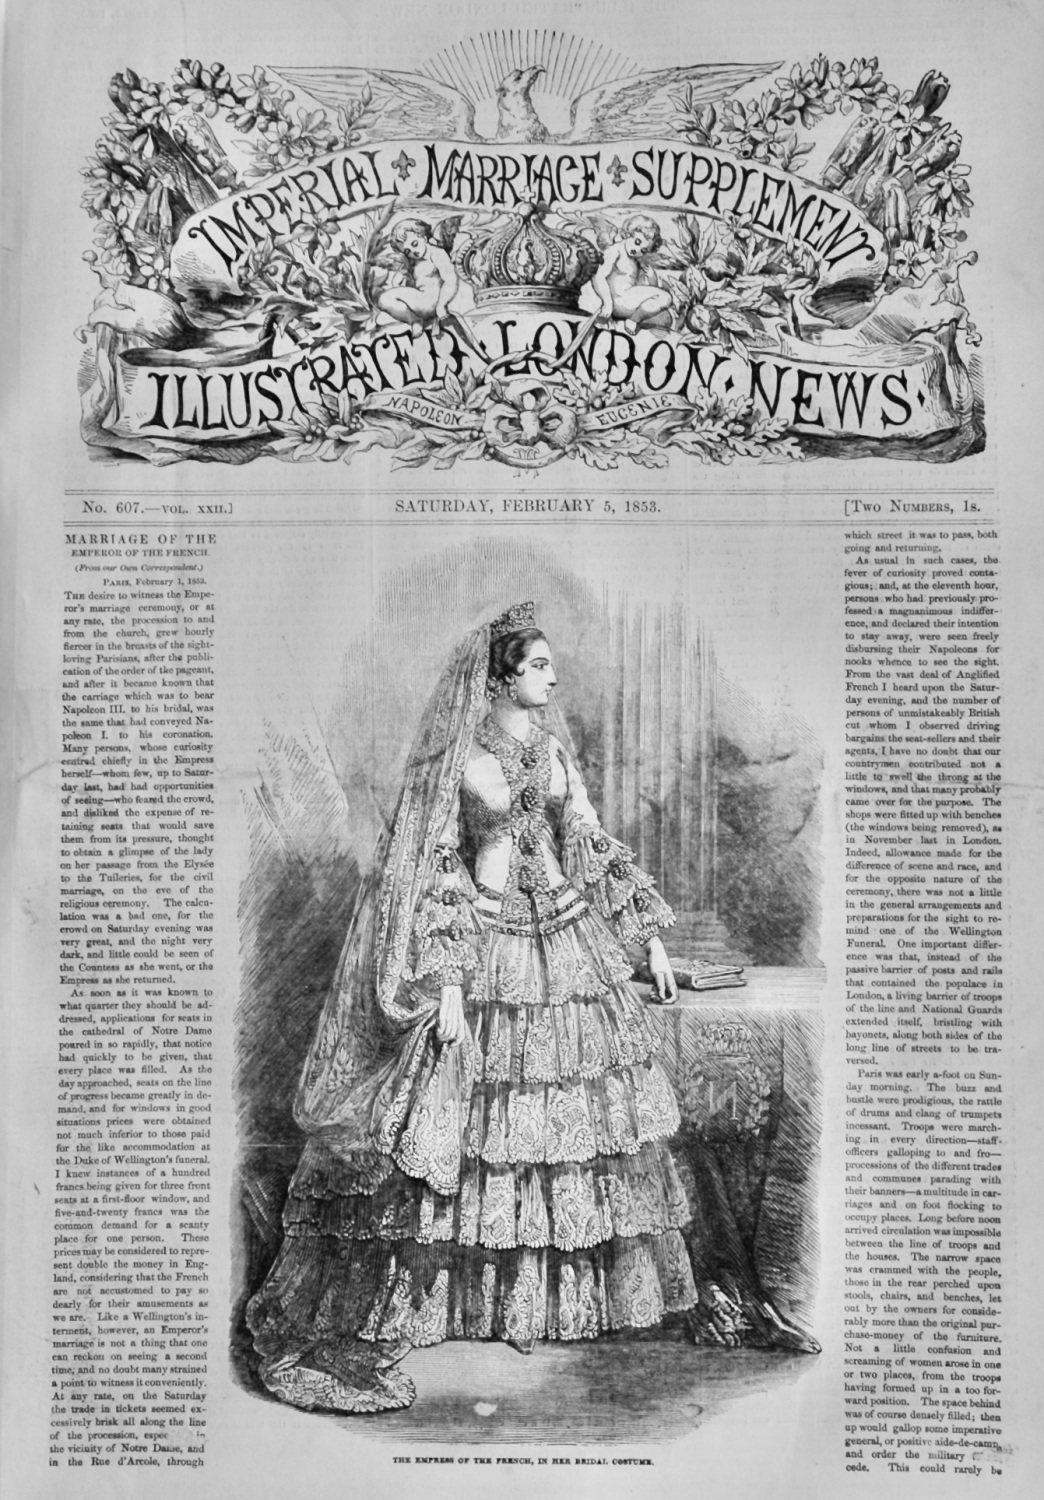 Illustrated London News : Imperial Marriage Supplement.  Feb 5th 1853.